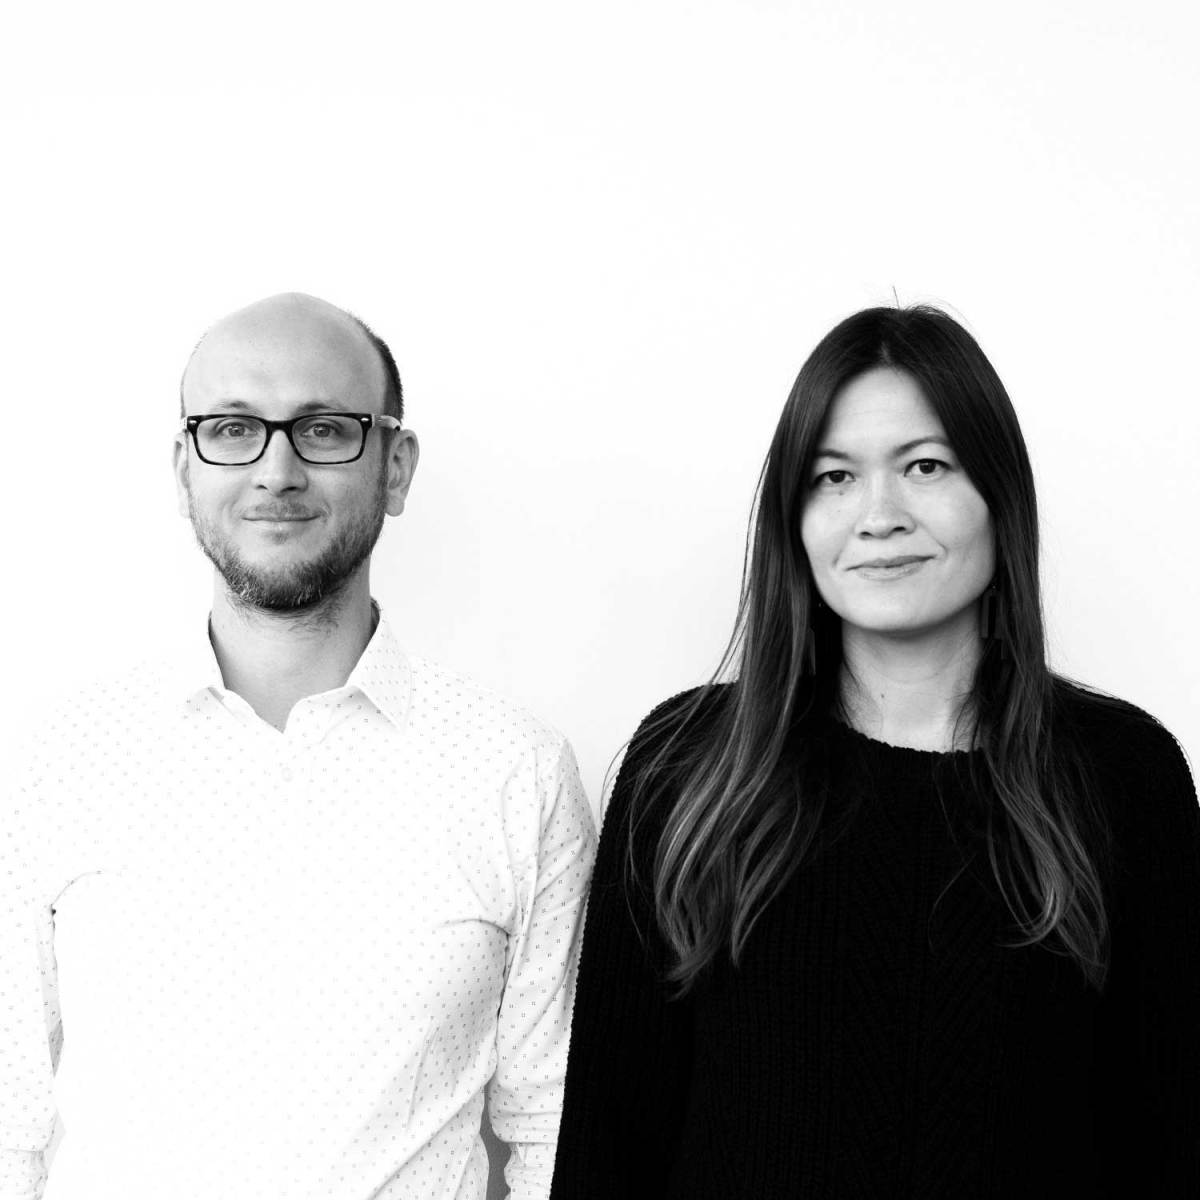 Black-and-white portrait of the artists Kelley and Jonathan Murphy